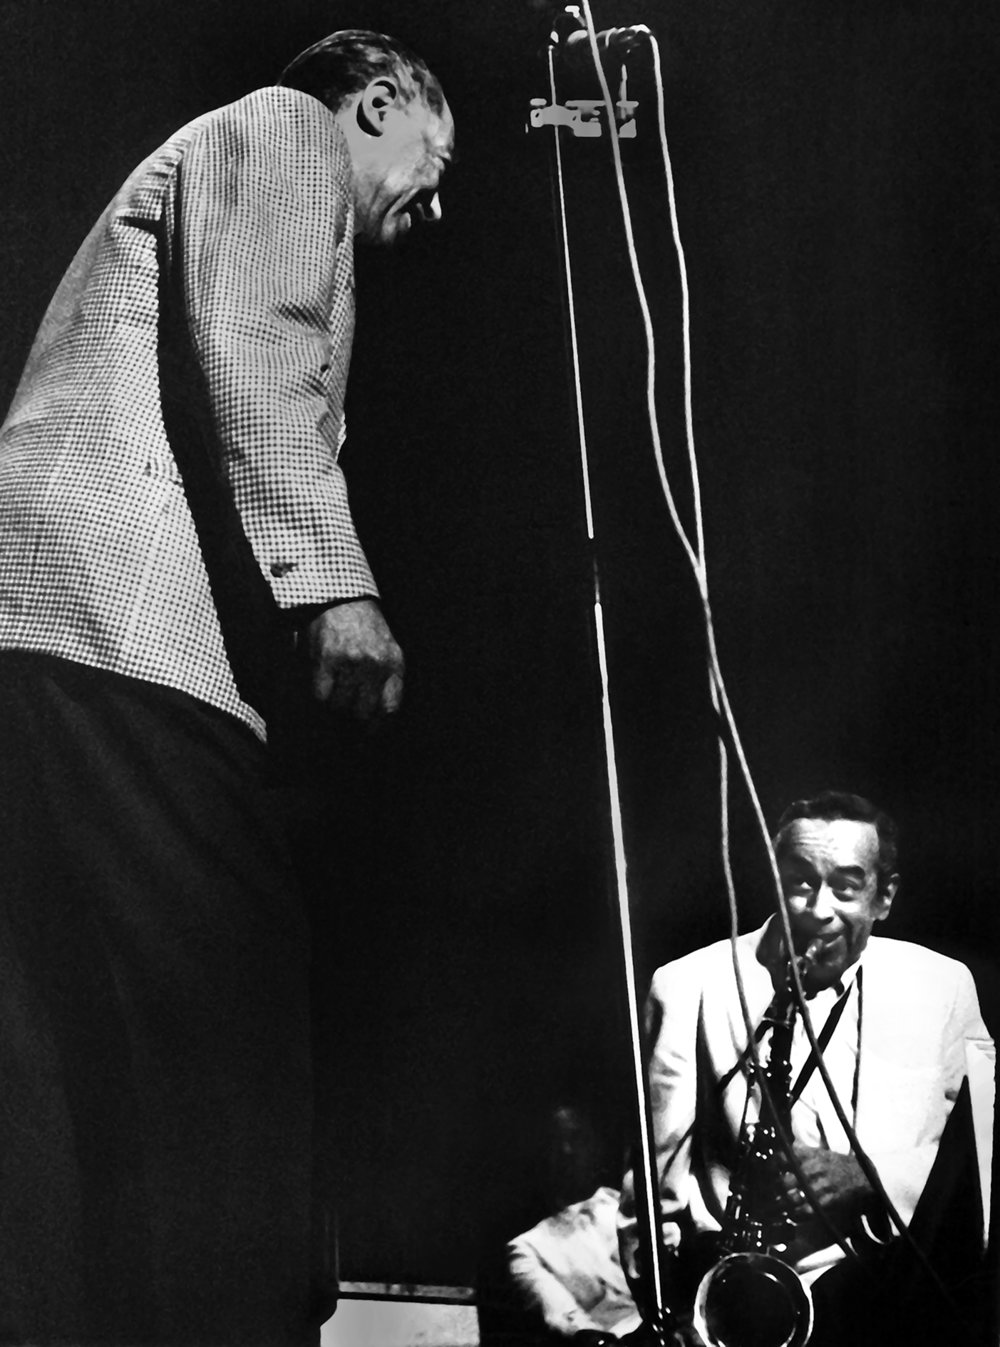 Duke Ellington & Paul Gonsalves